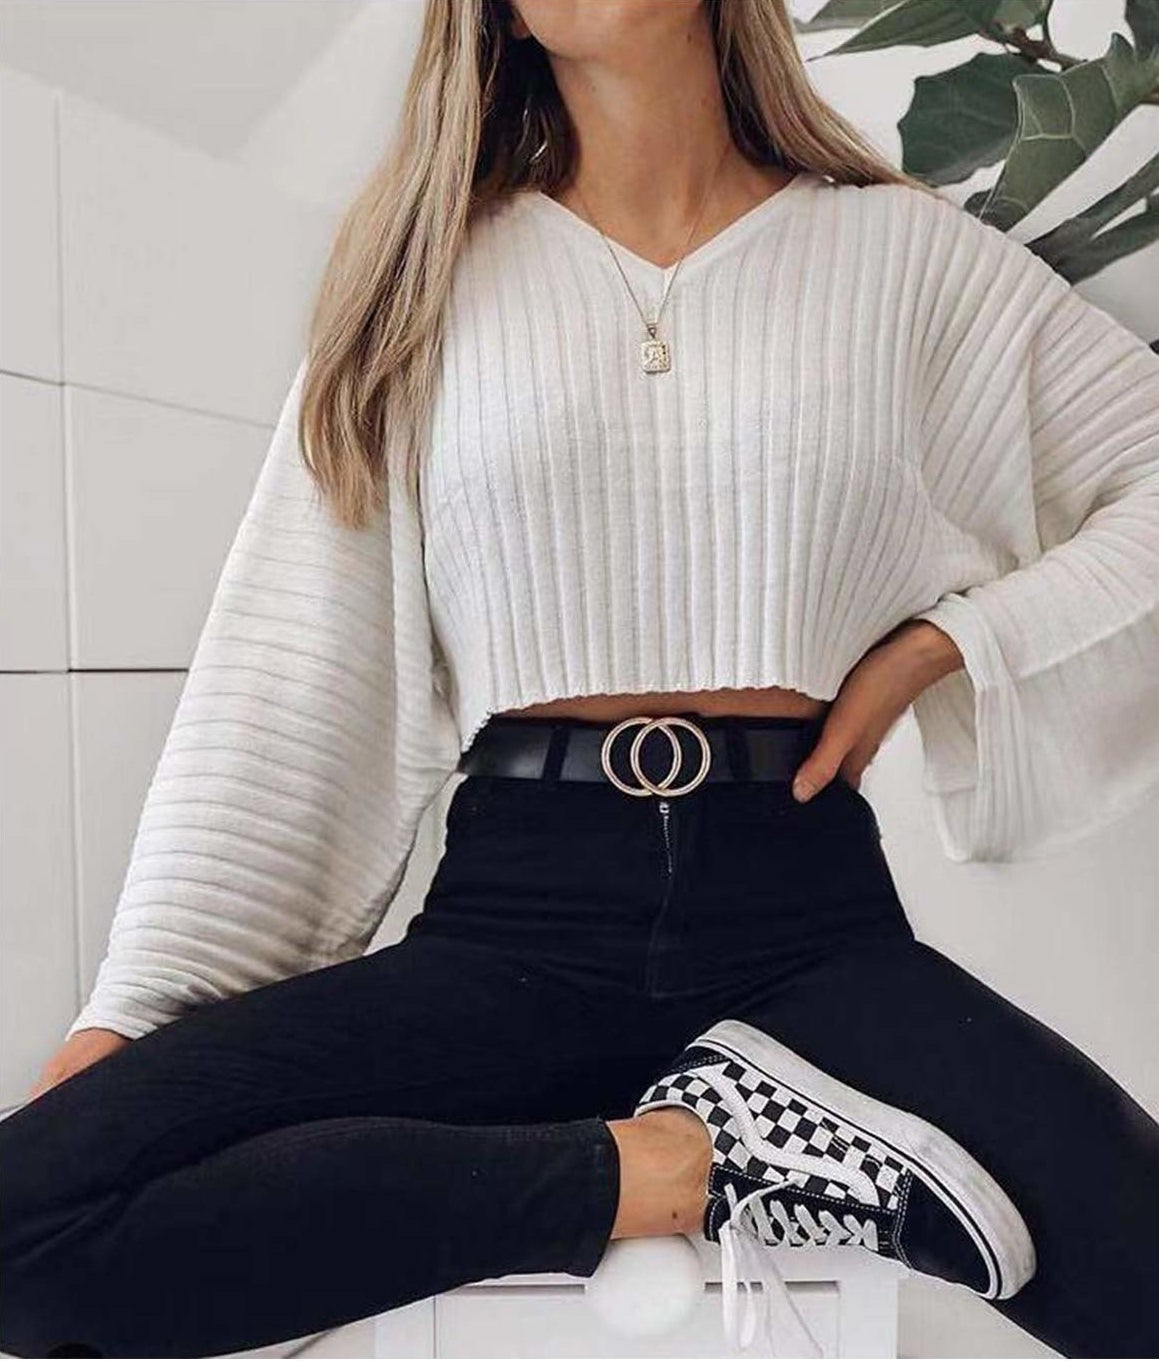 A person sitting with their hand on their hip They are wearing a long sleeved shirt, jeans, and a belt with a buckle in the shape of two interlocked circles